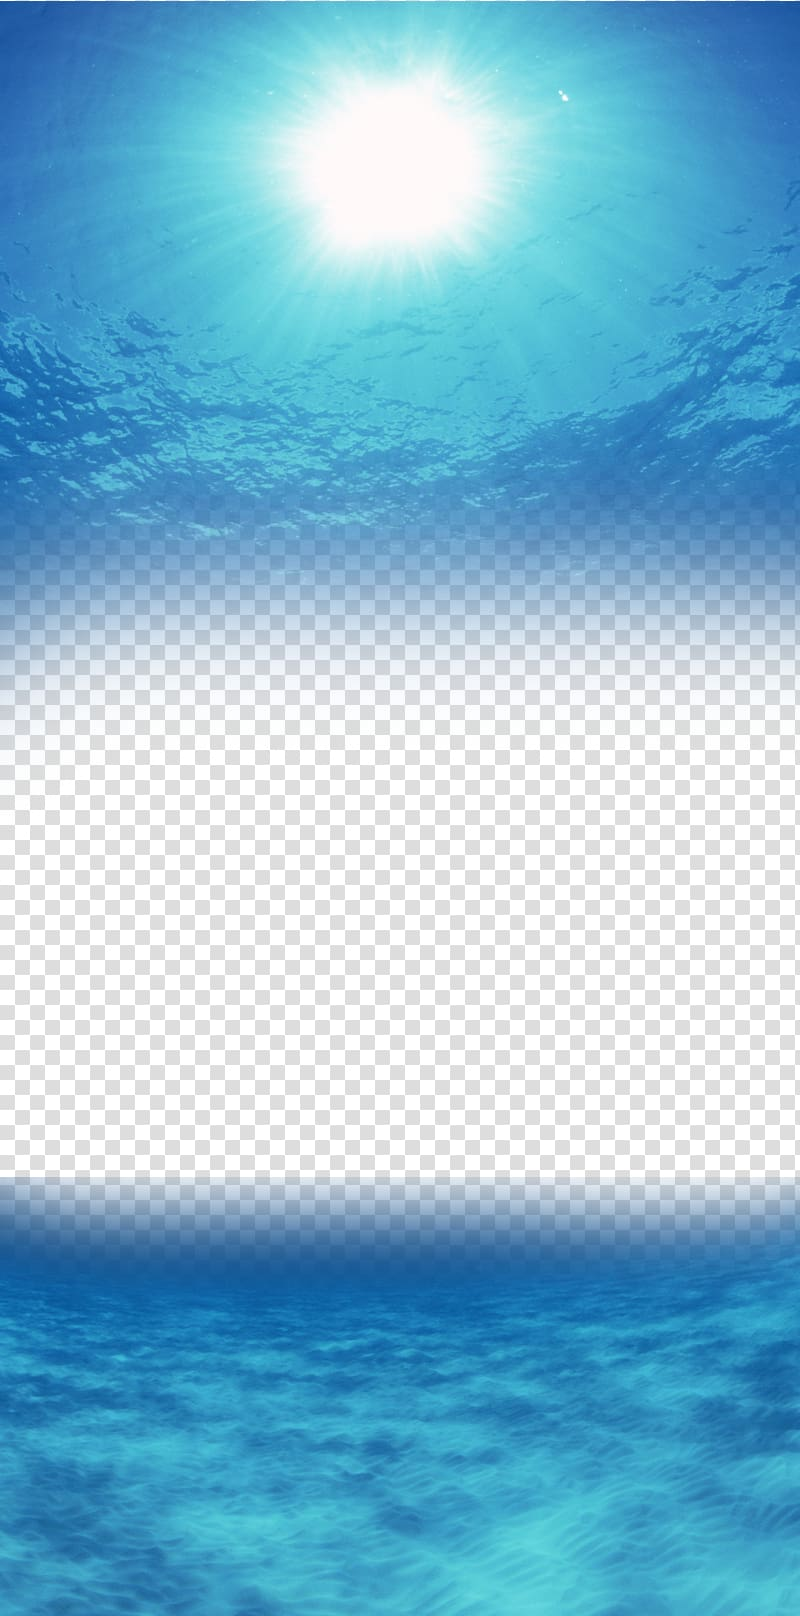 Water ocean background clipart clipart black and white library Light Reflection, Halo sea transparent background PNG ... clipart black and white library